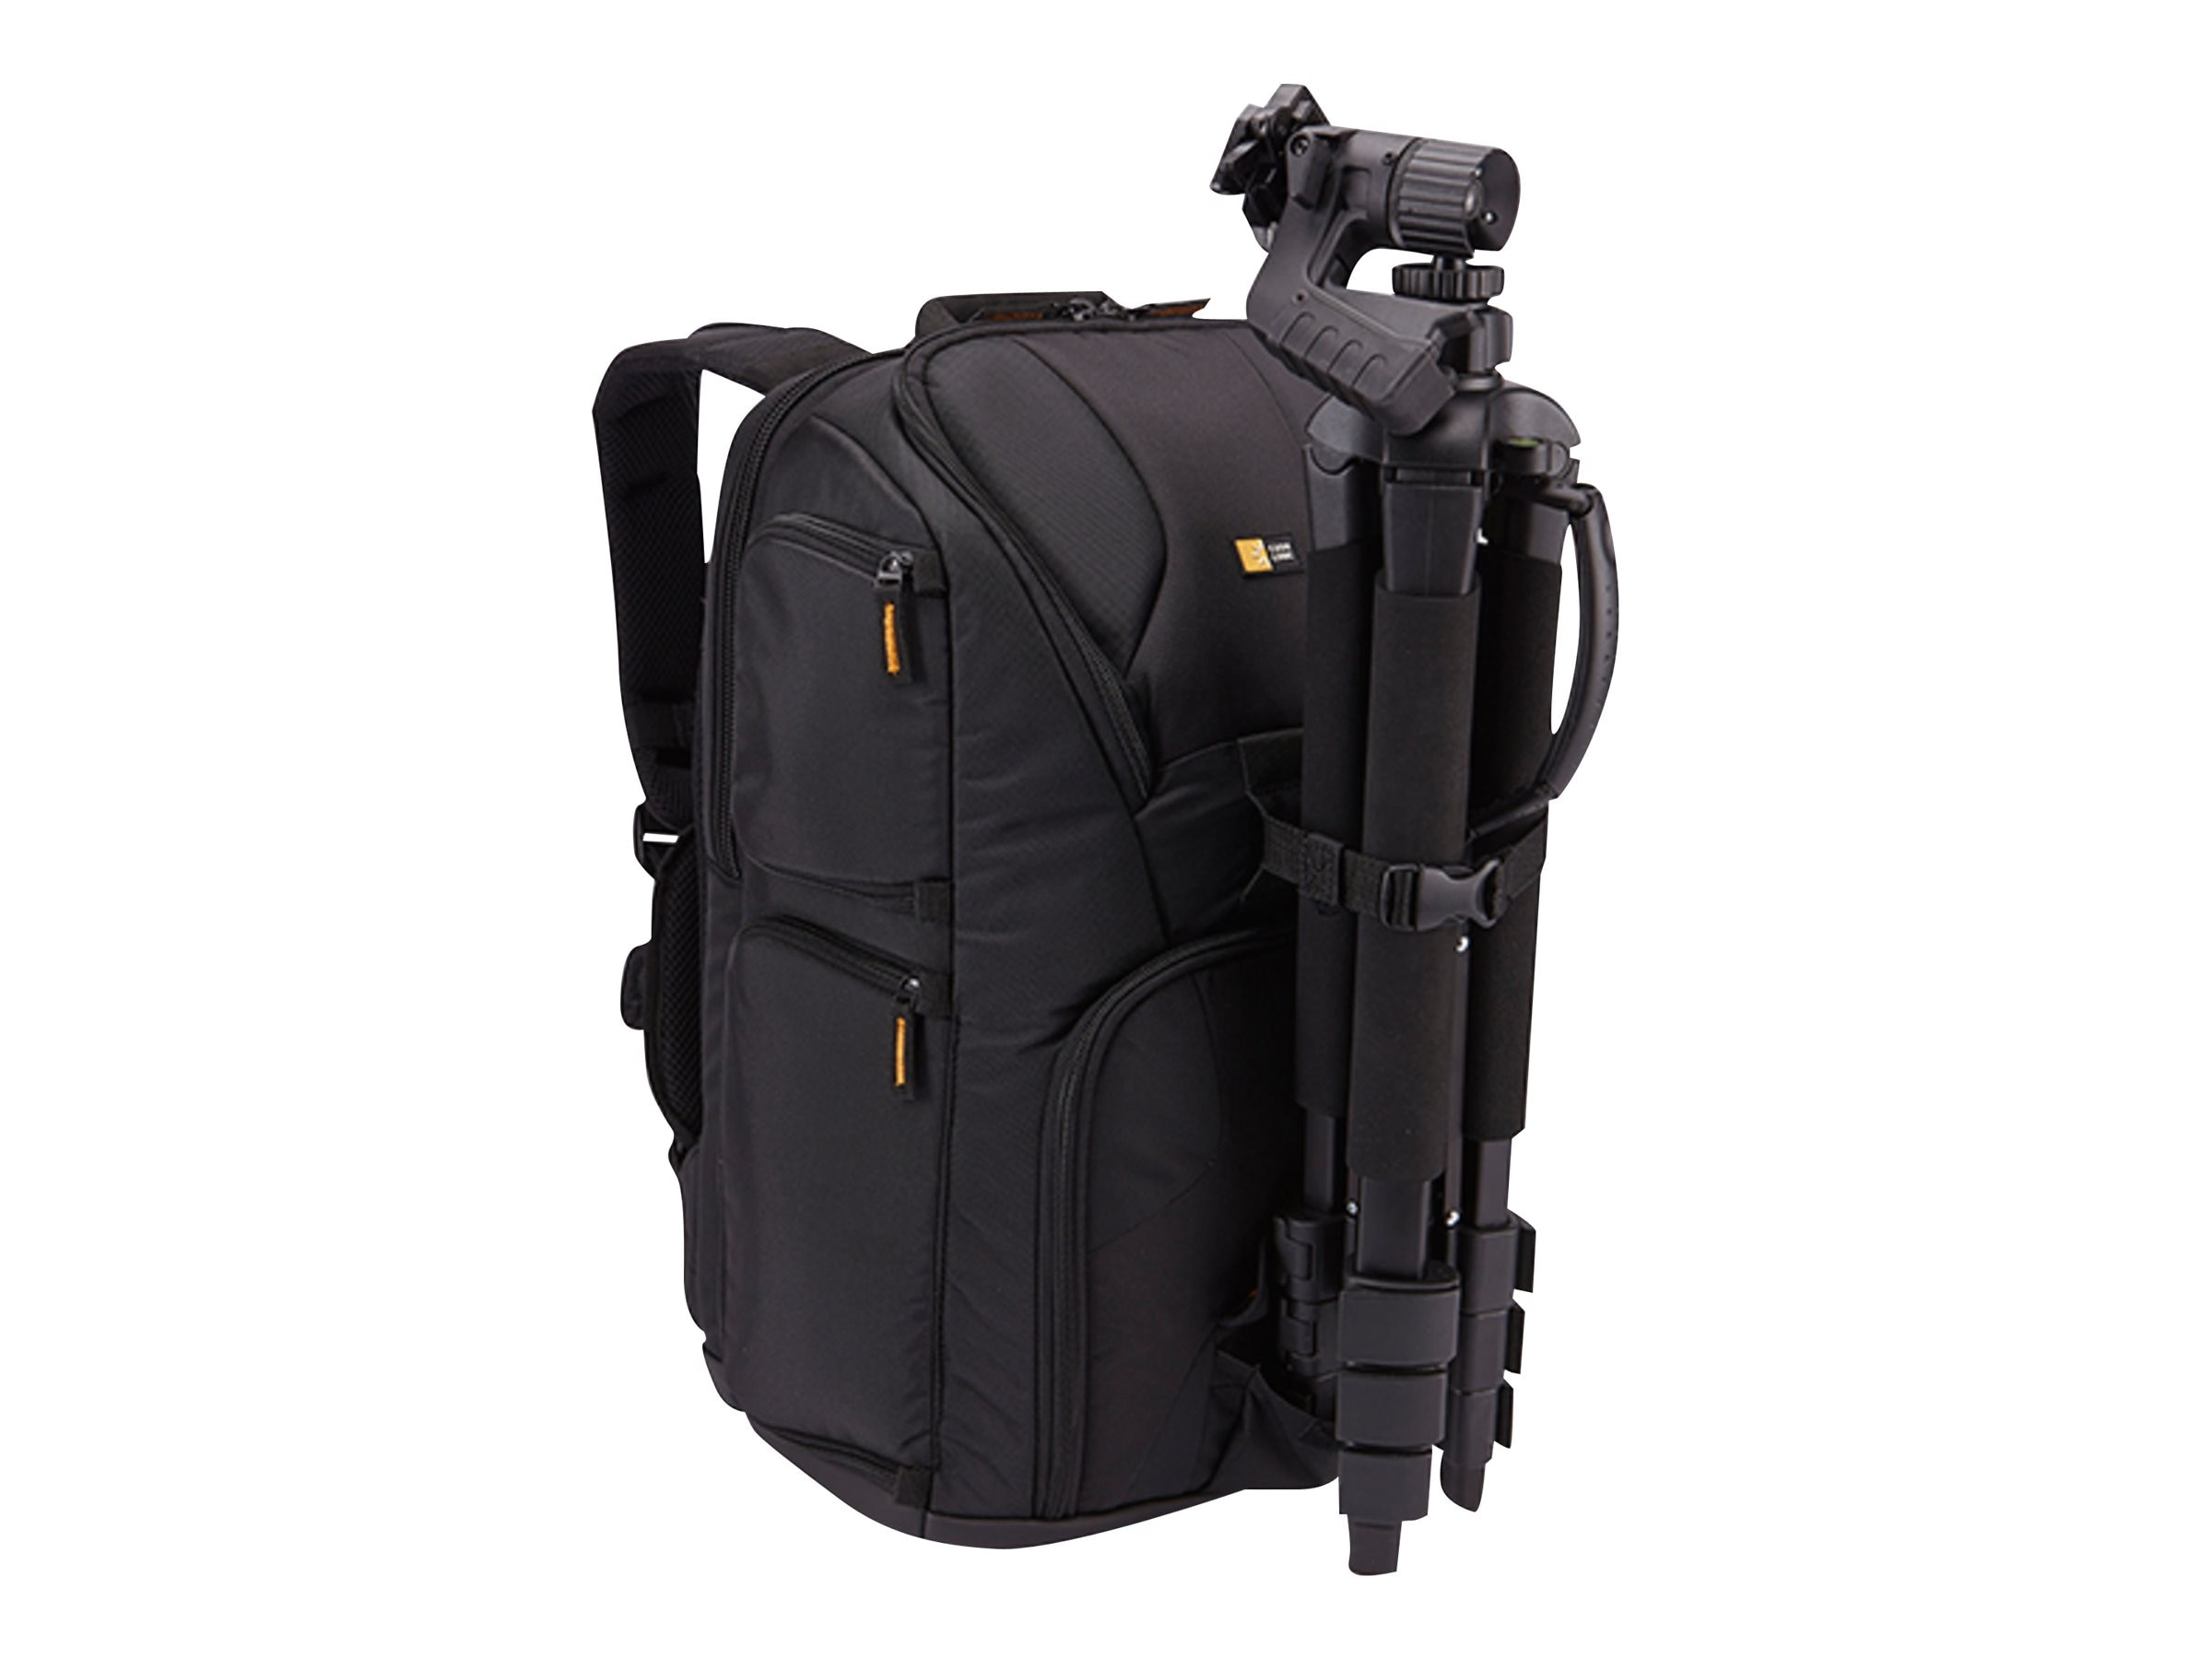 Case Logic Kilowatt Large Photo Sling Backpack, KSB-102BLACK, 20276426, Carrying Cases - Camera/Camcorder